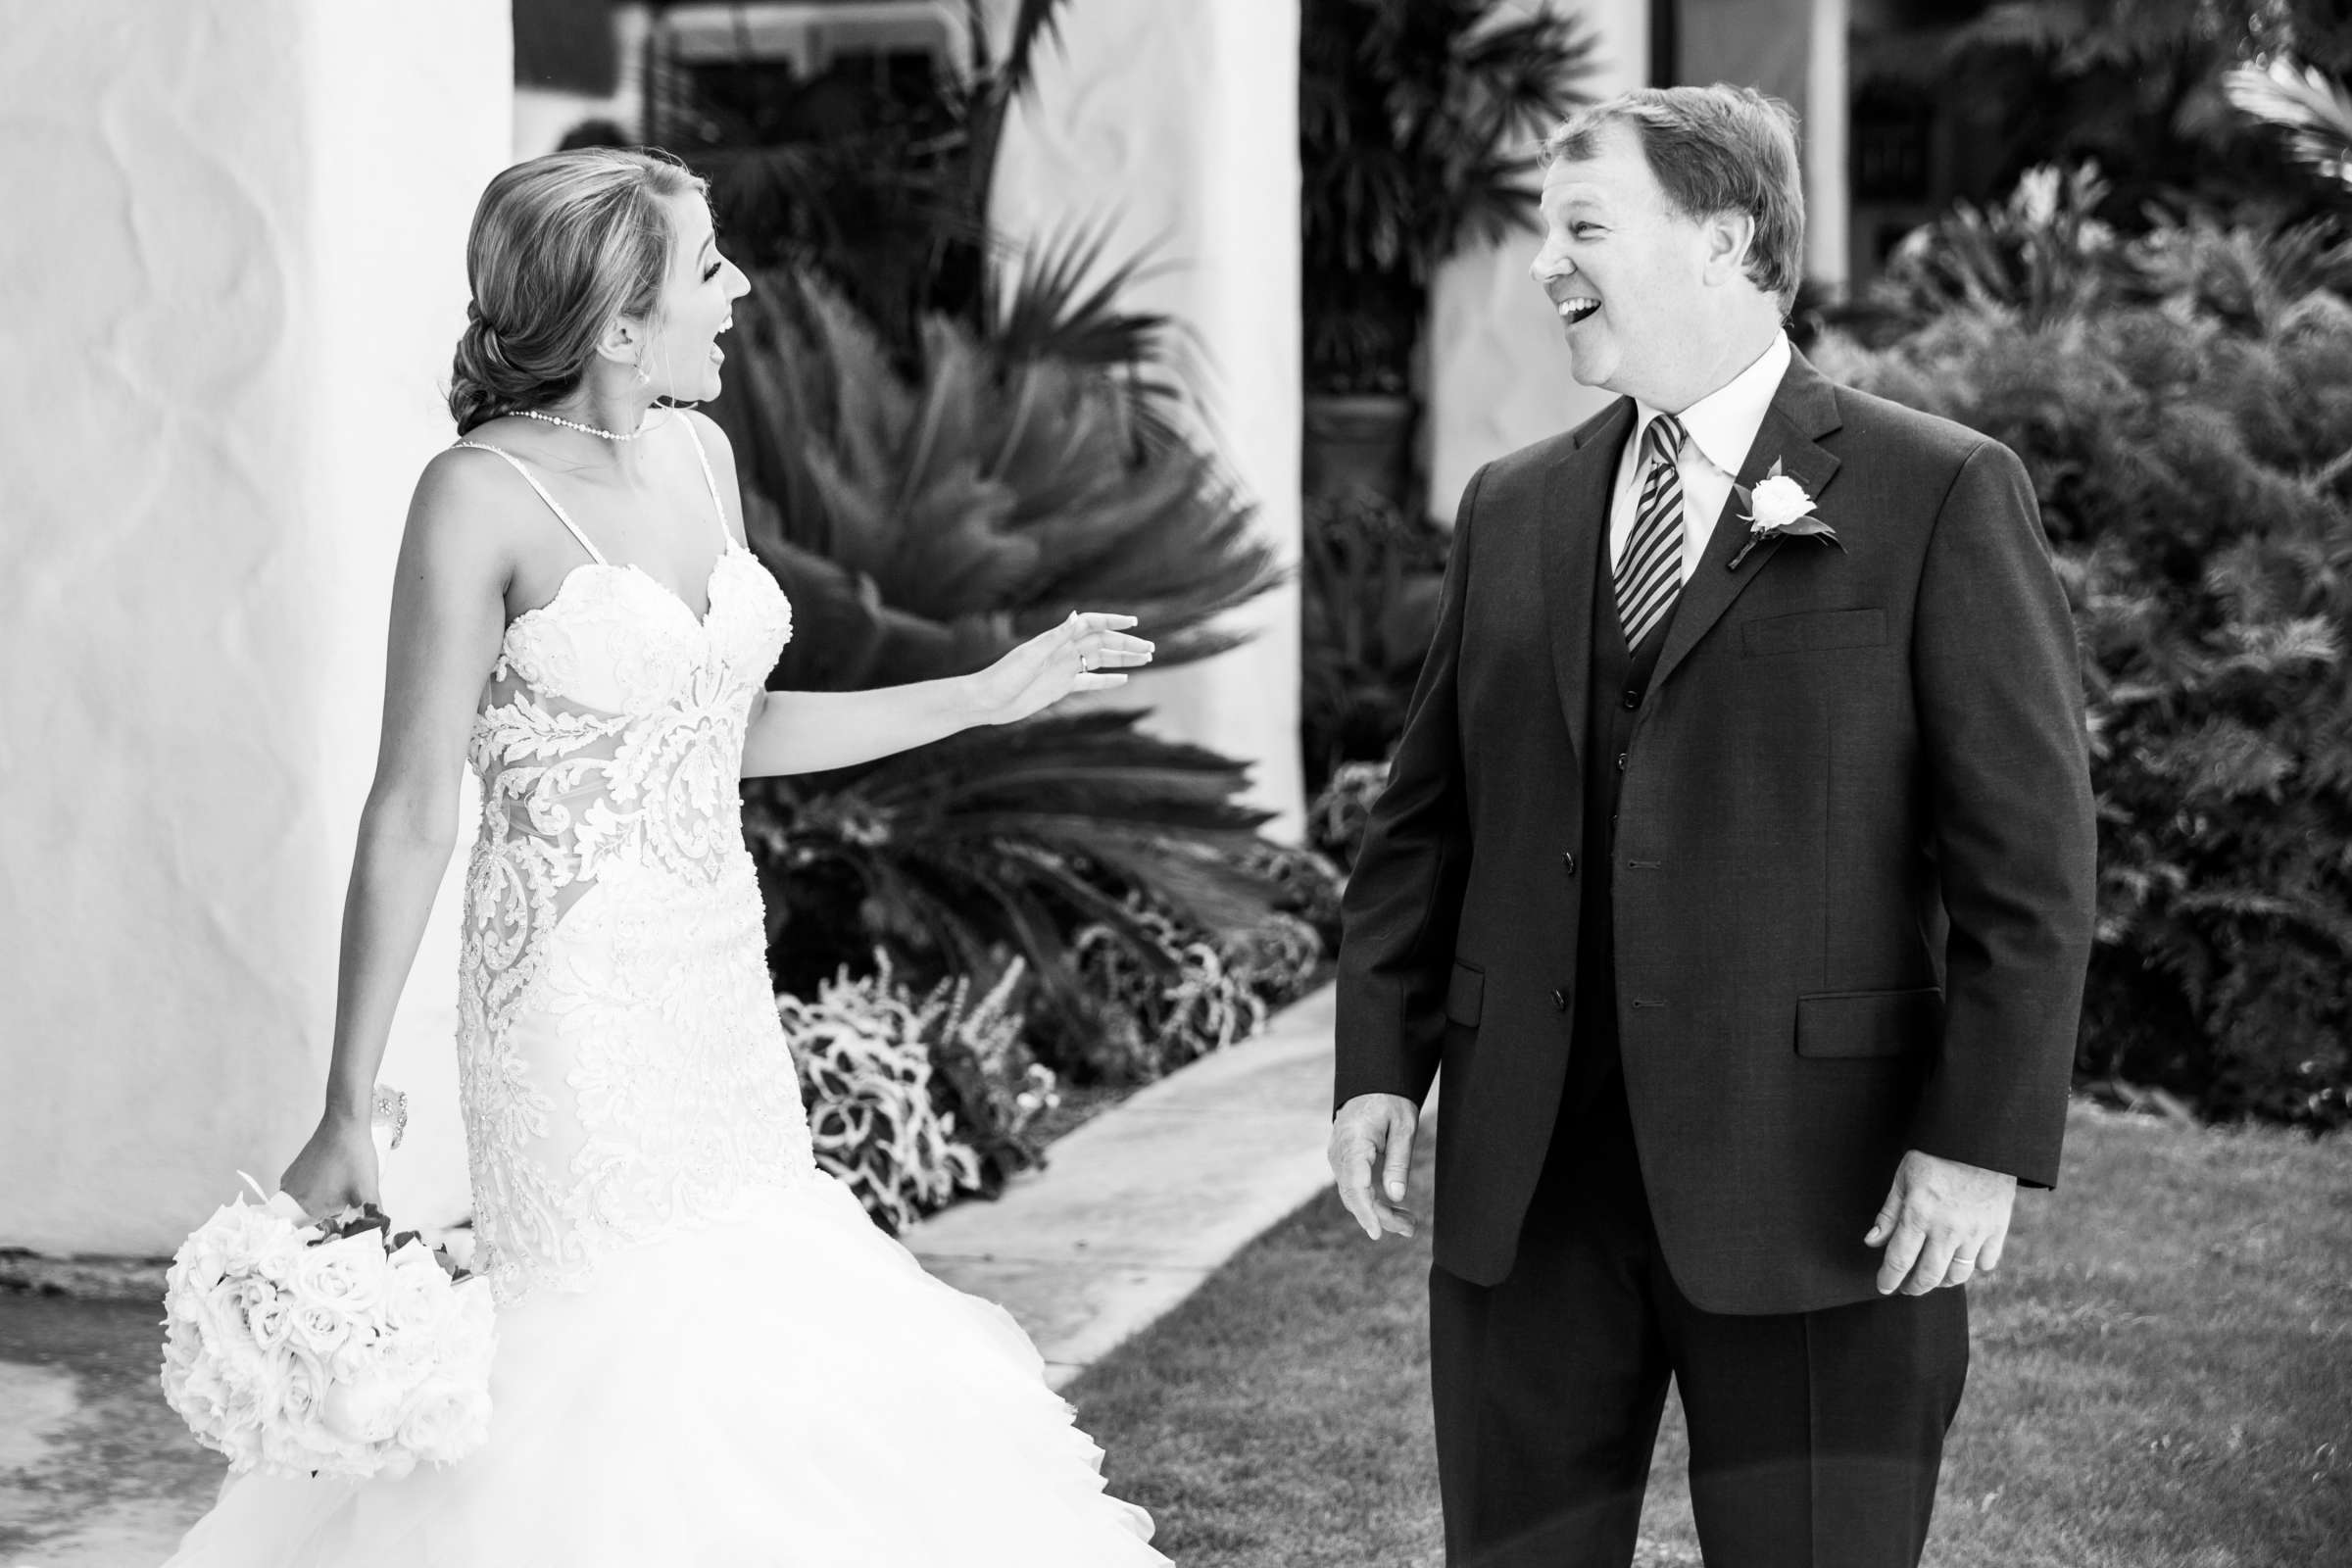 Fairbanks Ranch Country Club Wedding coordinated by Monarch Weddings, Gabriella and Kyle Wedding Photo #57 by True Photography